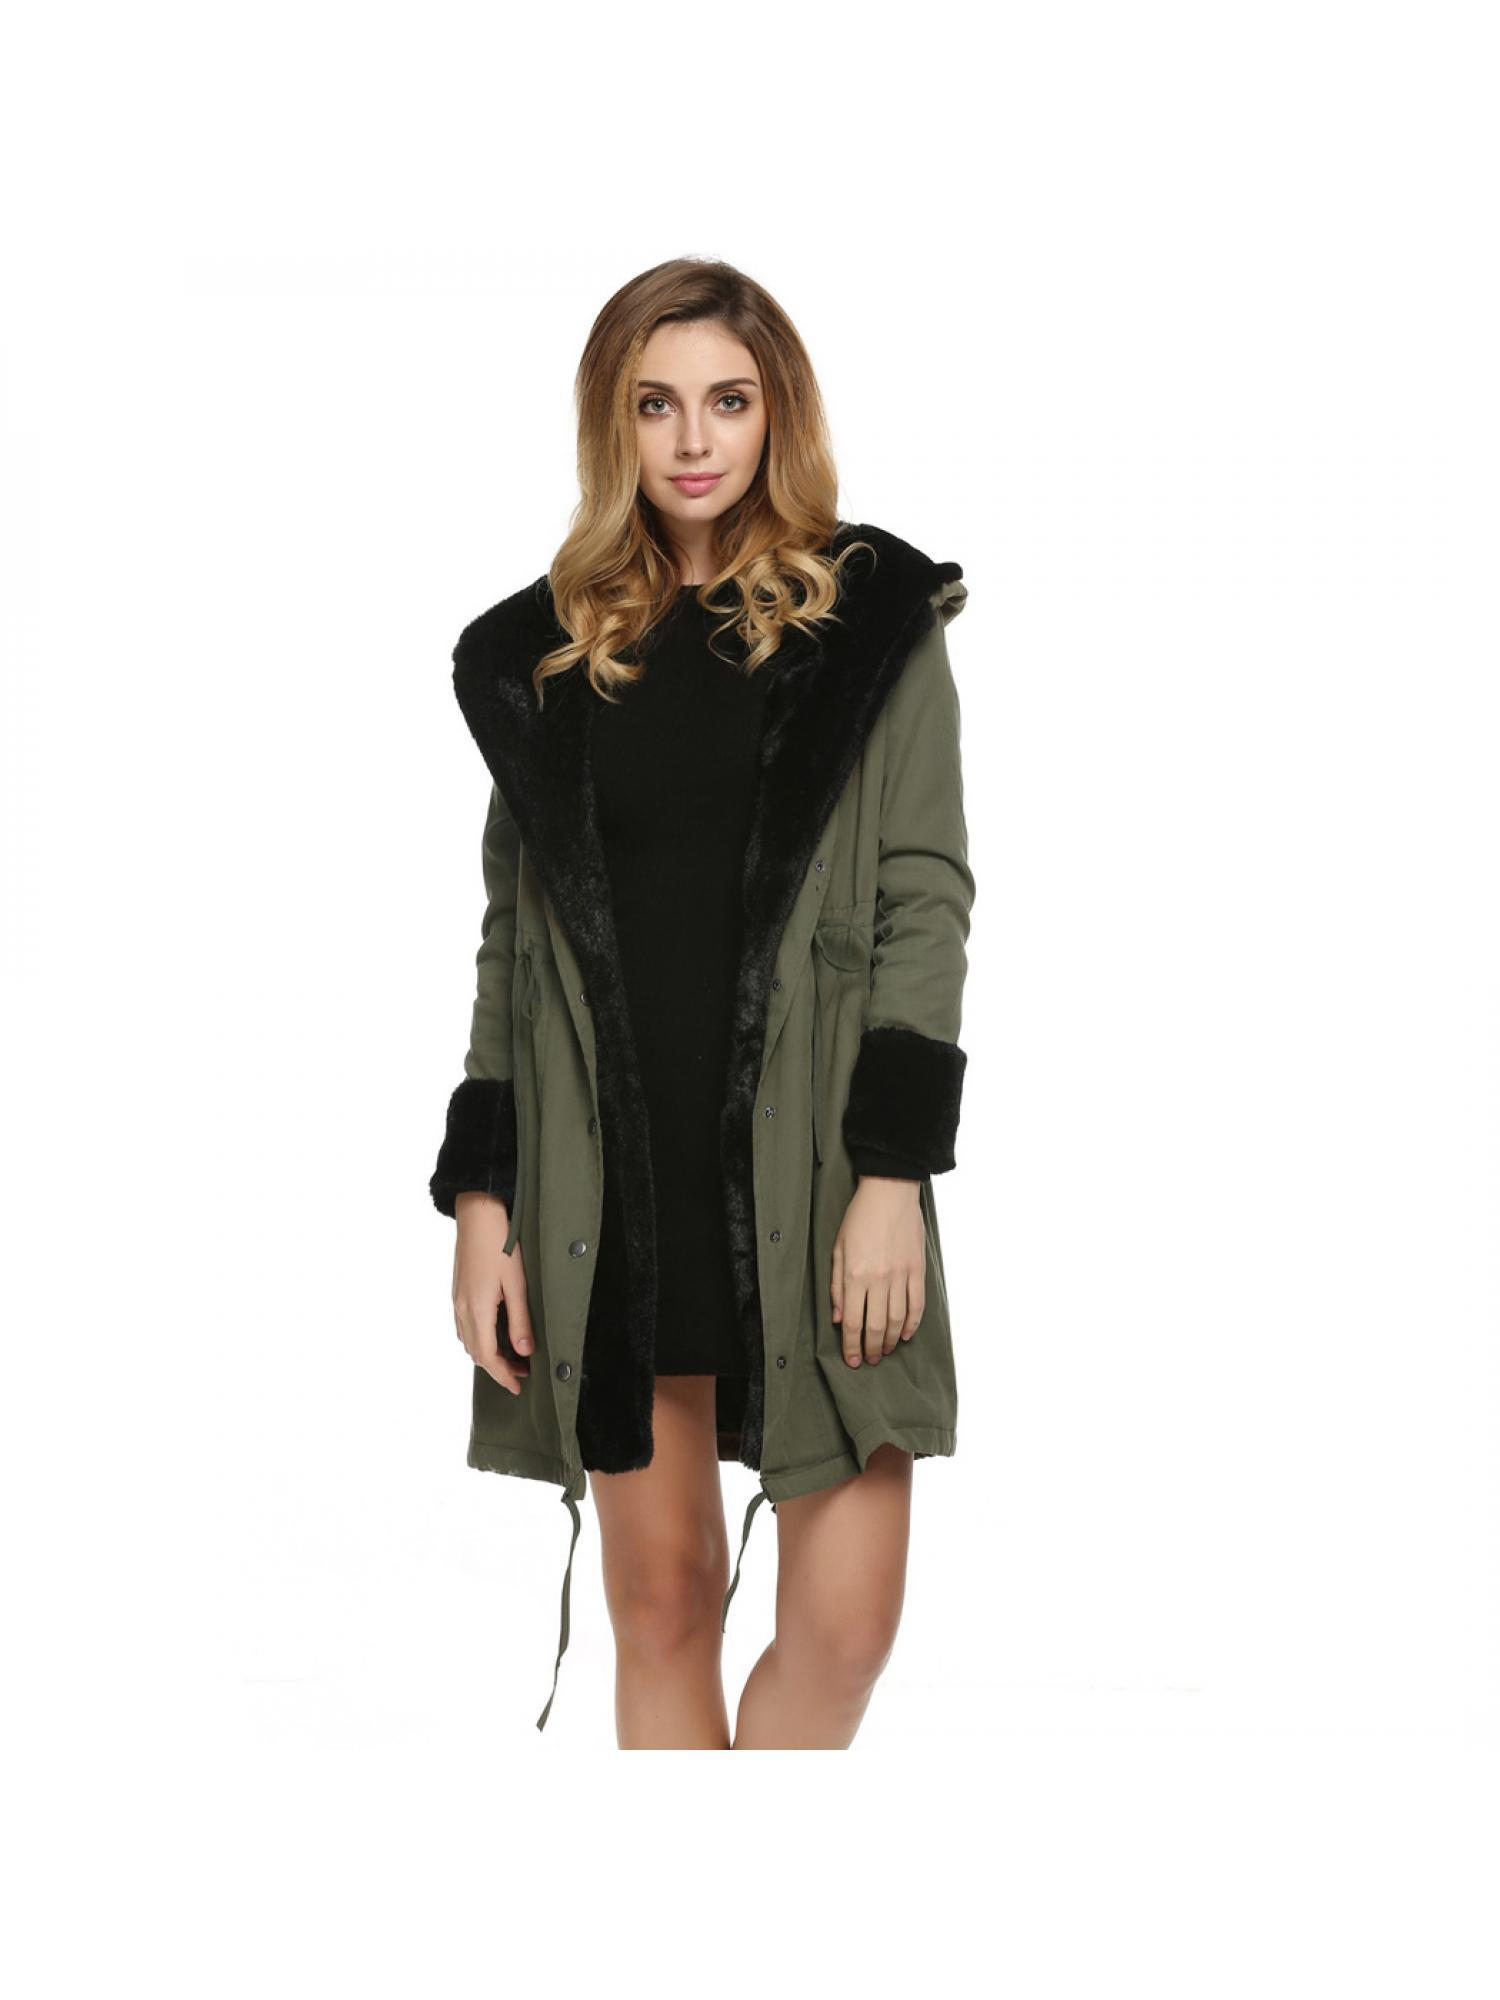 Clearance ! Women Overcoat  Lady Hooded Winter Warm Thick Faux Fur Coat Parka Long Outerwear Jacket GlSTE